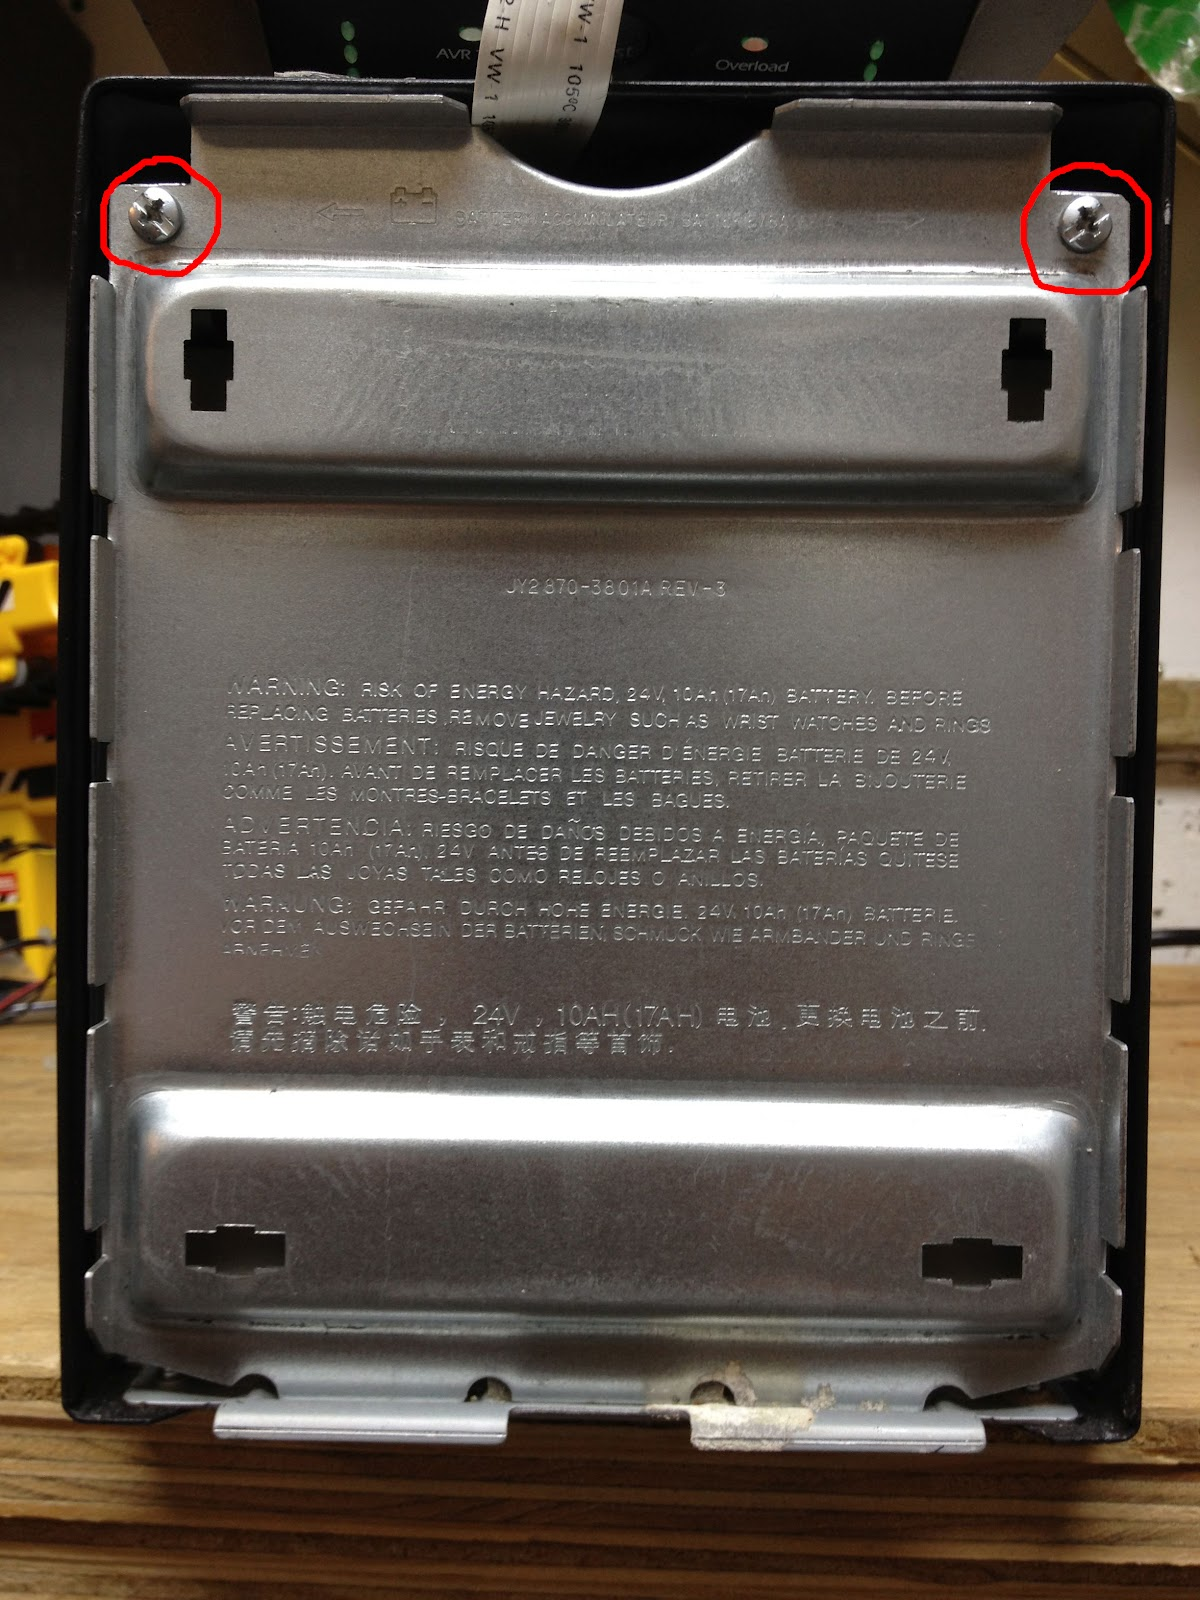 How To Replace The Battery In An Apc Smart Ups 1500 Share Your Repair Wiring Diagram Free Picture Pull Top Of Plate Out Bottom It Sits Into Two Notches You Will Be Able Lift Up And Once Have Leaned A